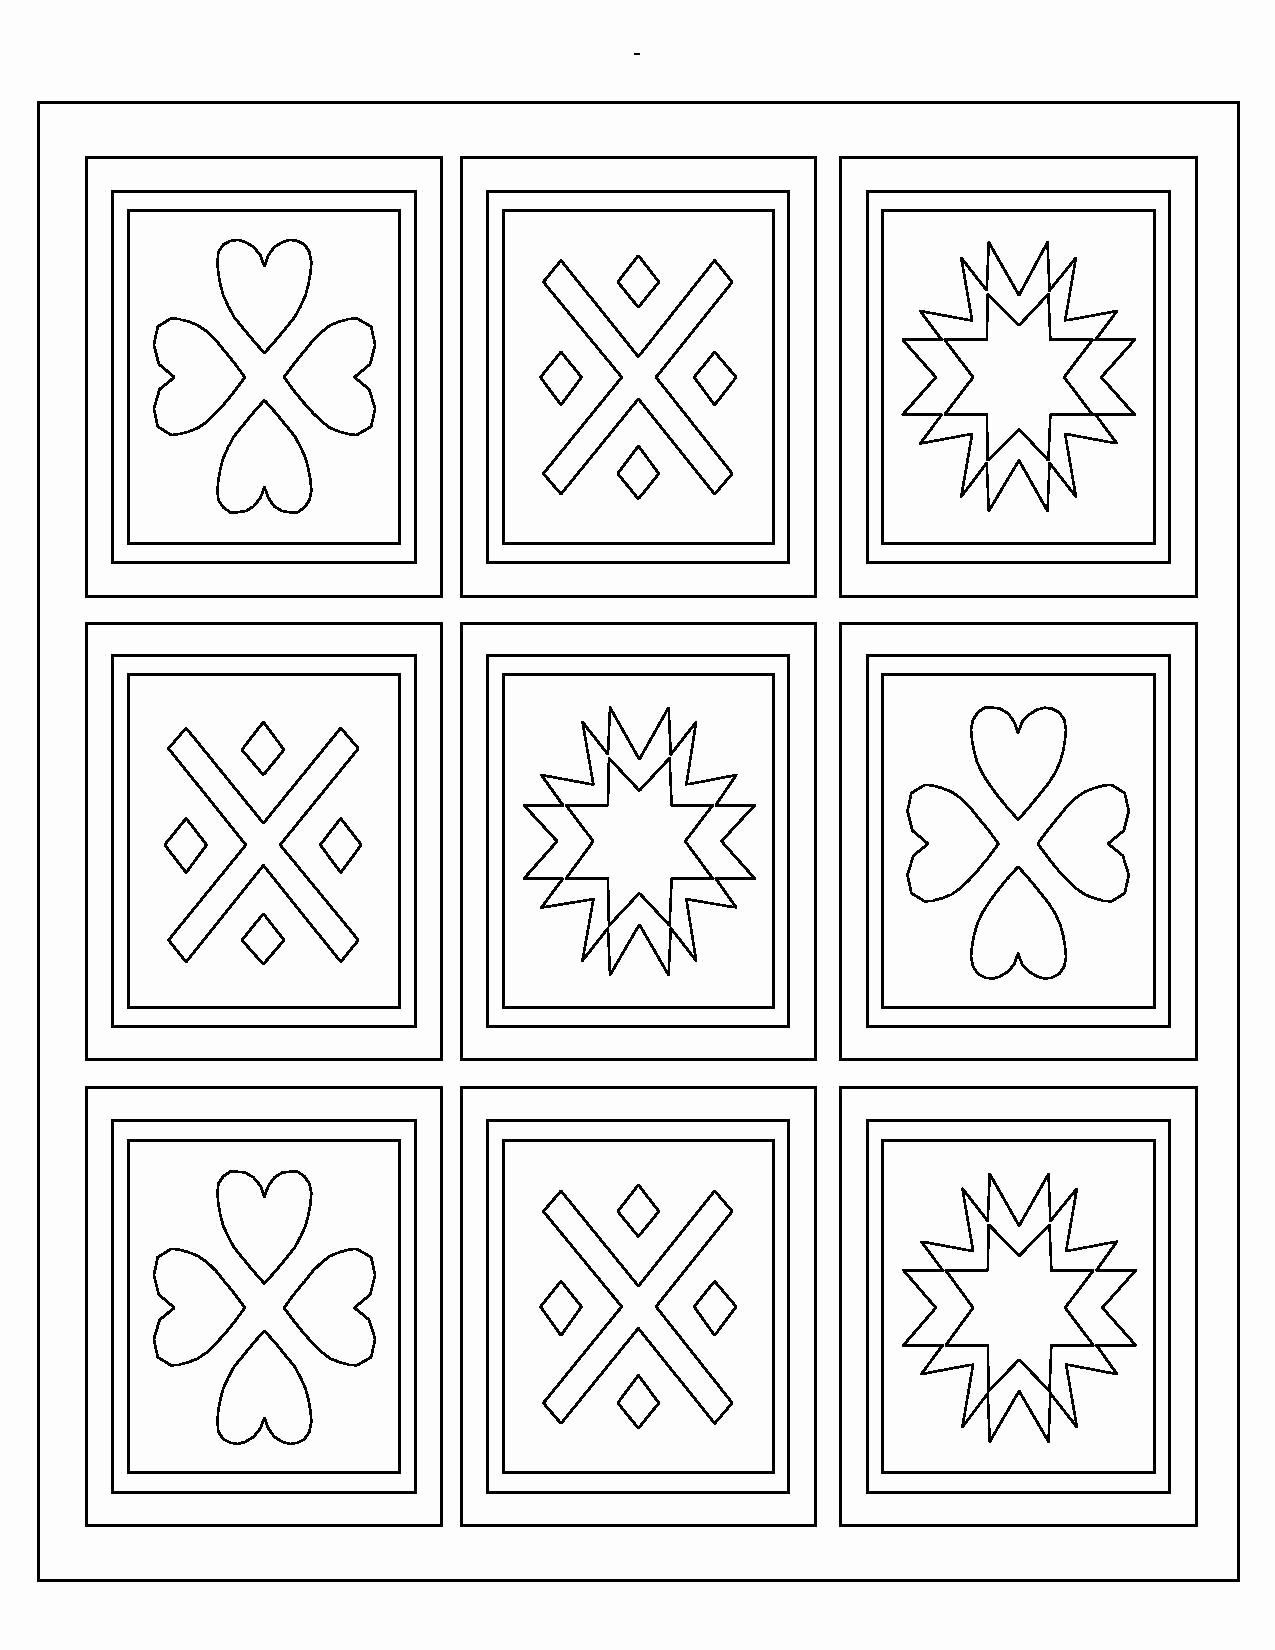 Free Printable Quilt Coloring Pages New Elegant Quilt Coloring Pages To Print Pattern Coloring Pages Coloring Pages Free Coloring Pages